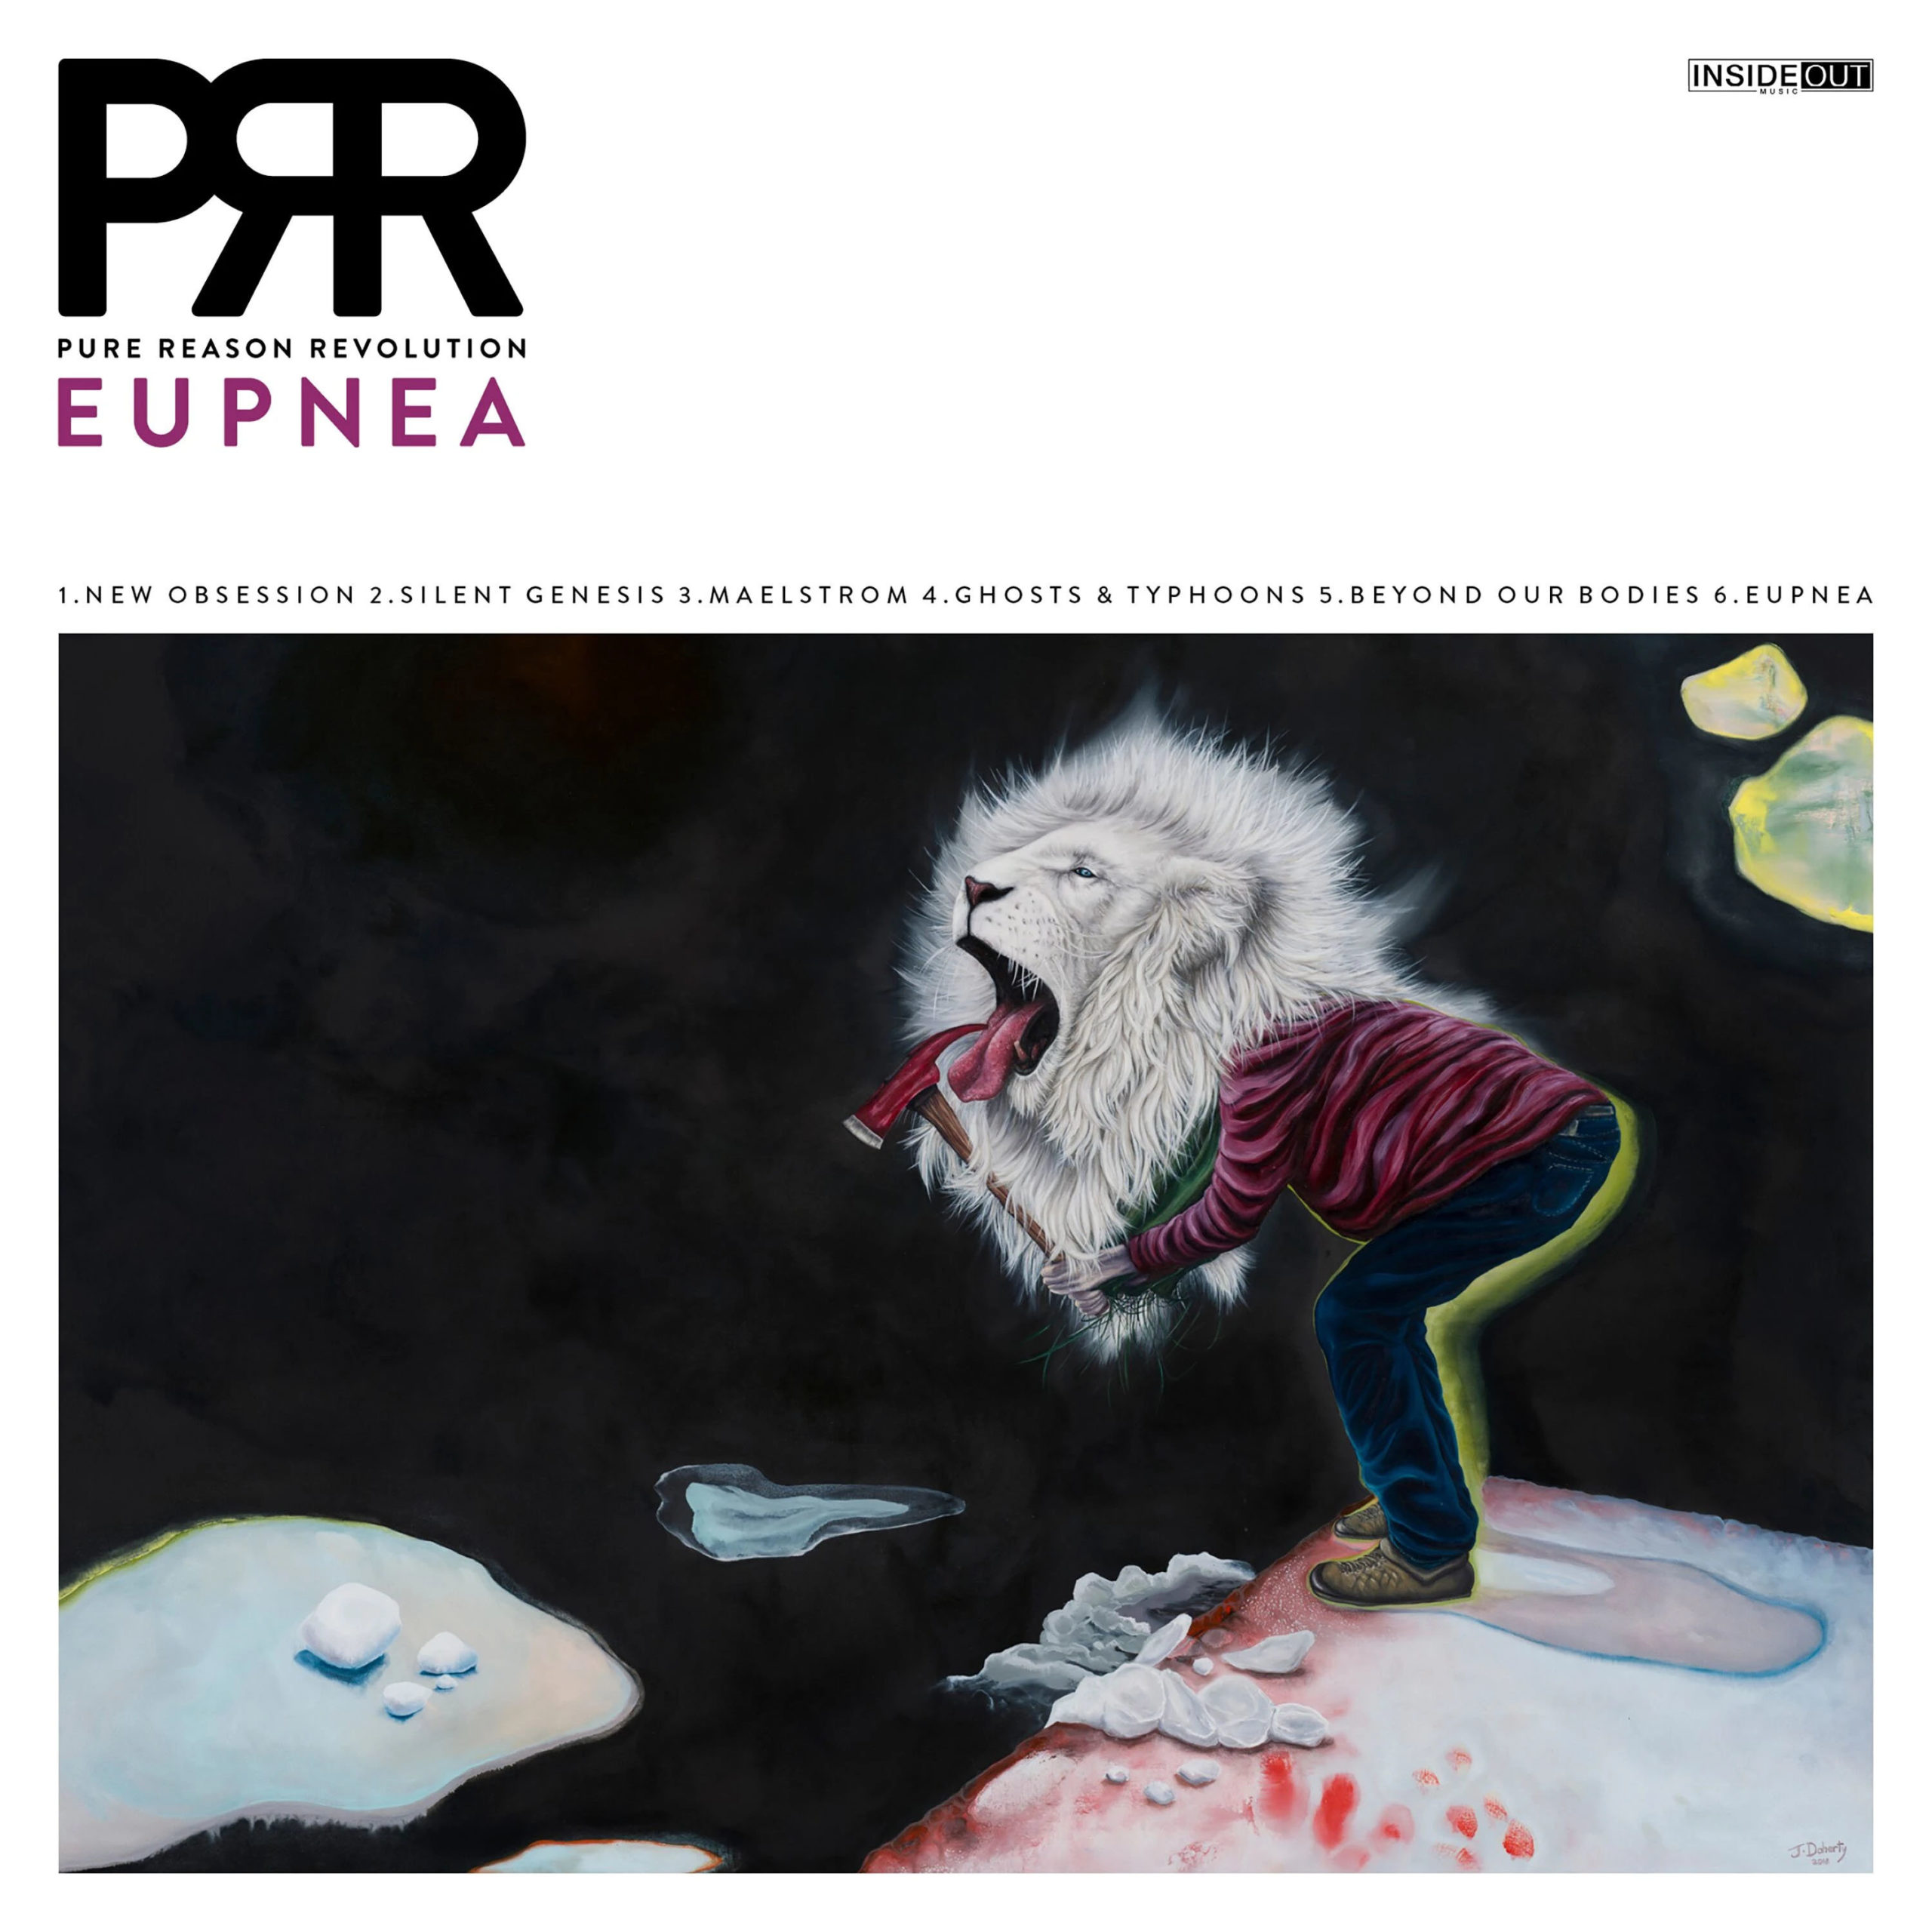 Pure Reason Revolution: Eupnea